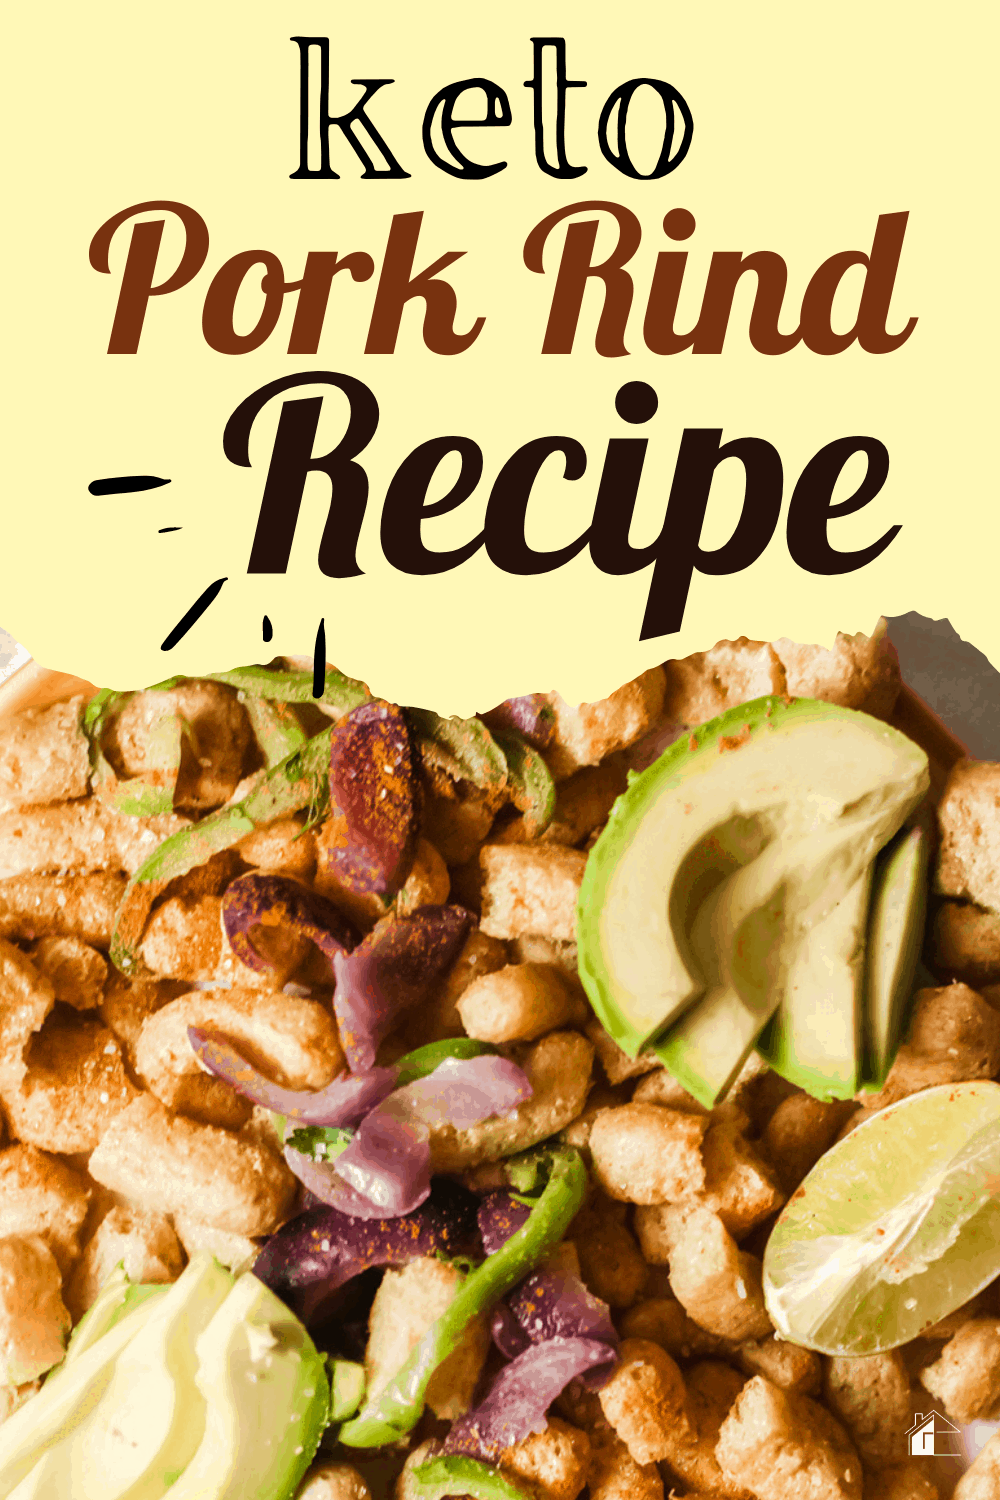 With herbs, spices, and avocado, in Keto Pork rind Nachos, you can continue enjoying your healthy snack while on the very low-carb keto diet. via @mystayathome